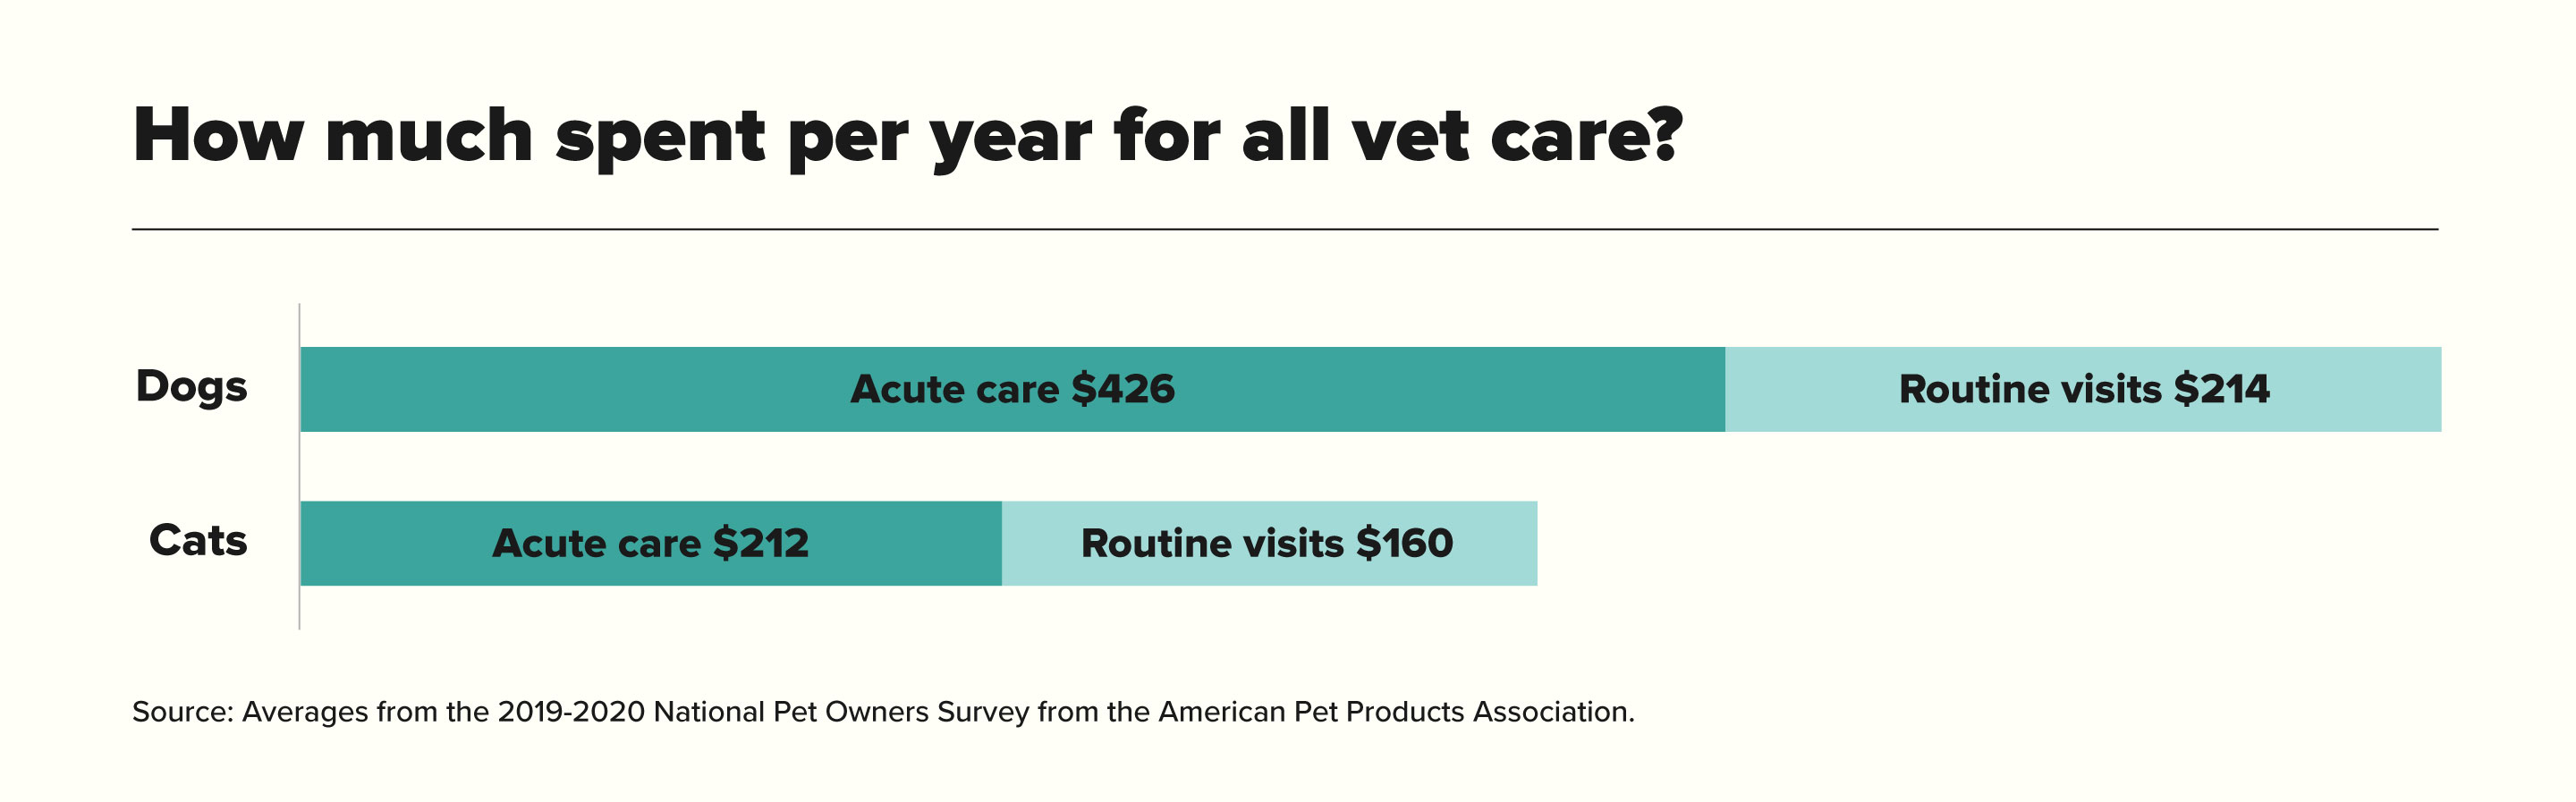 How much spent per year for all vet care